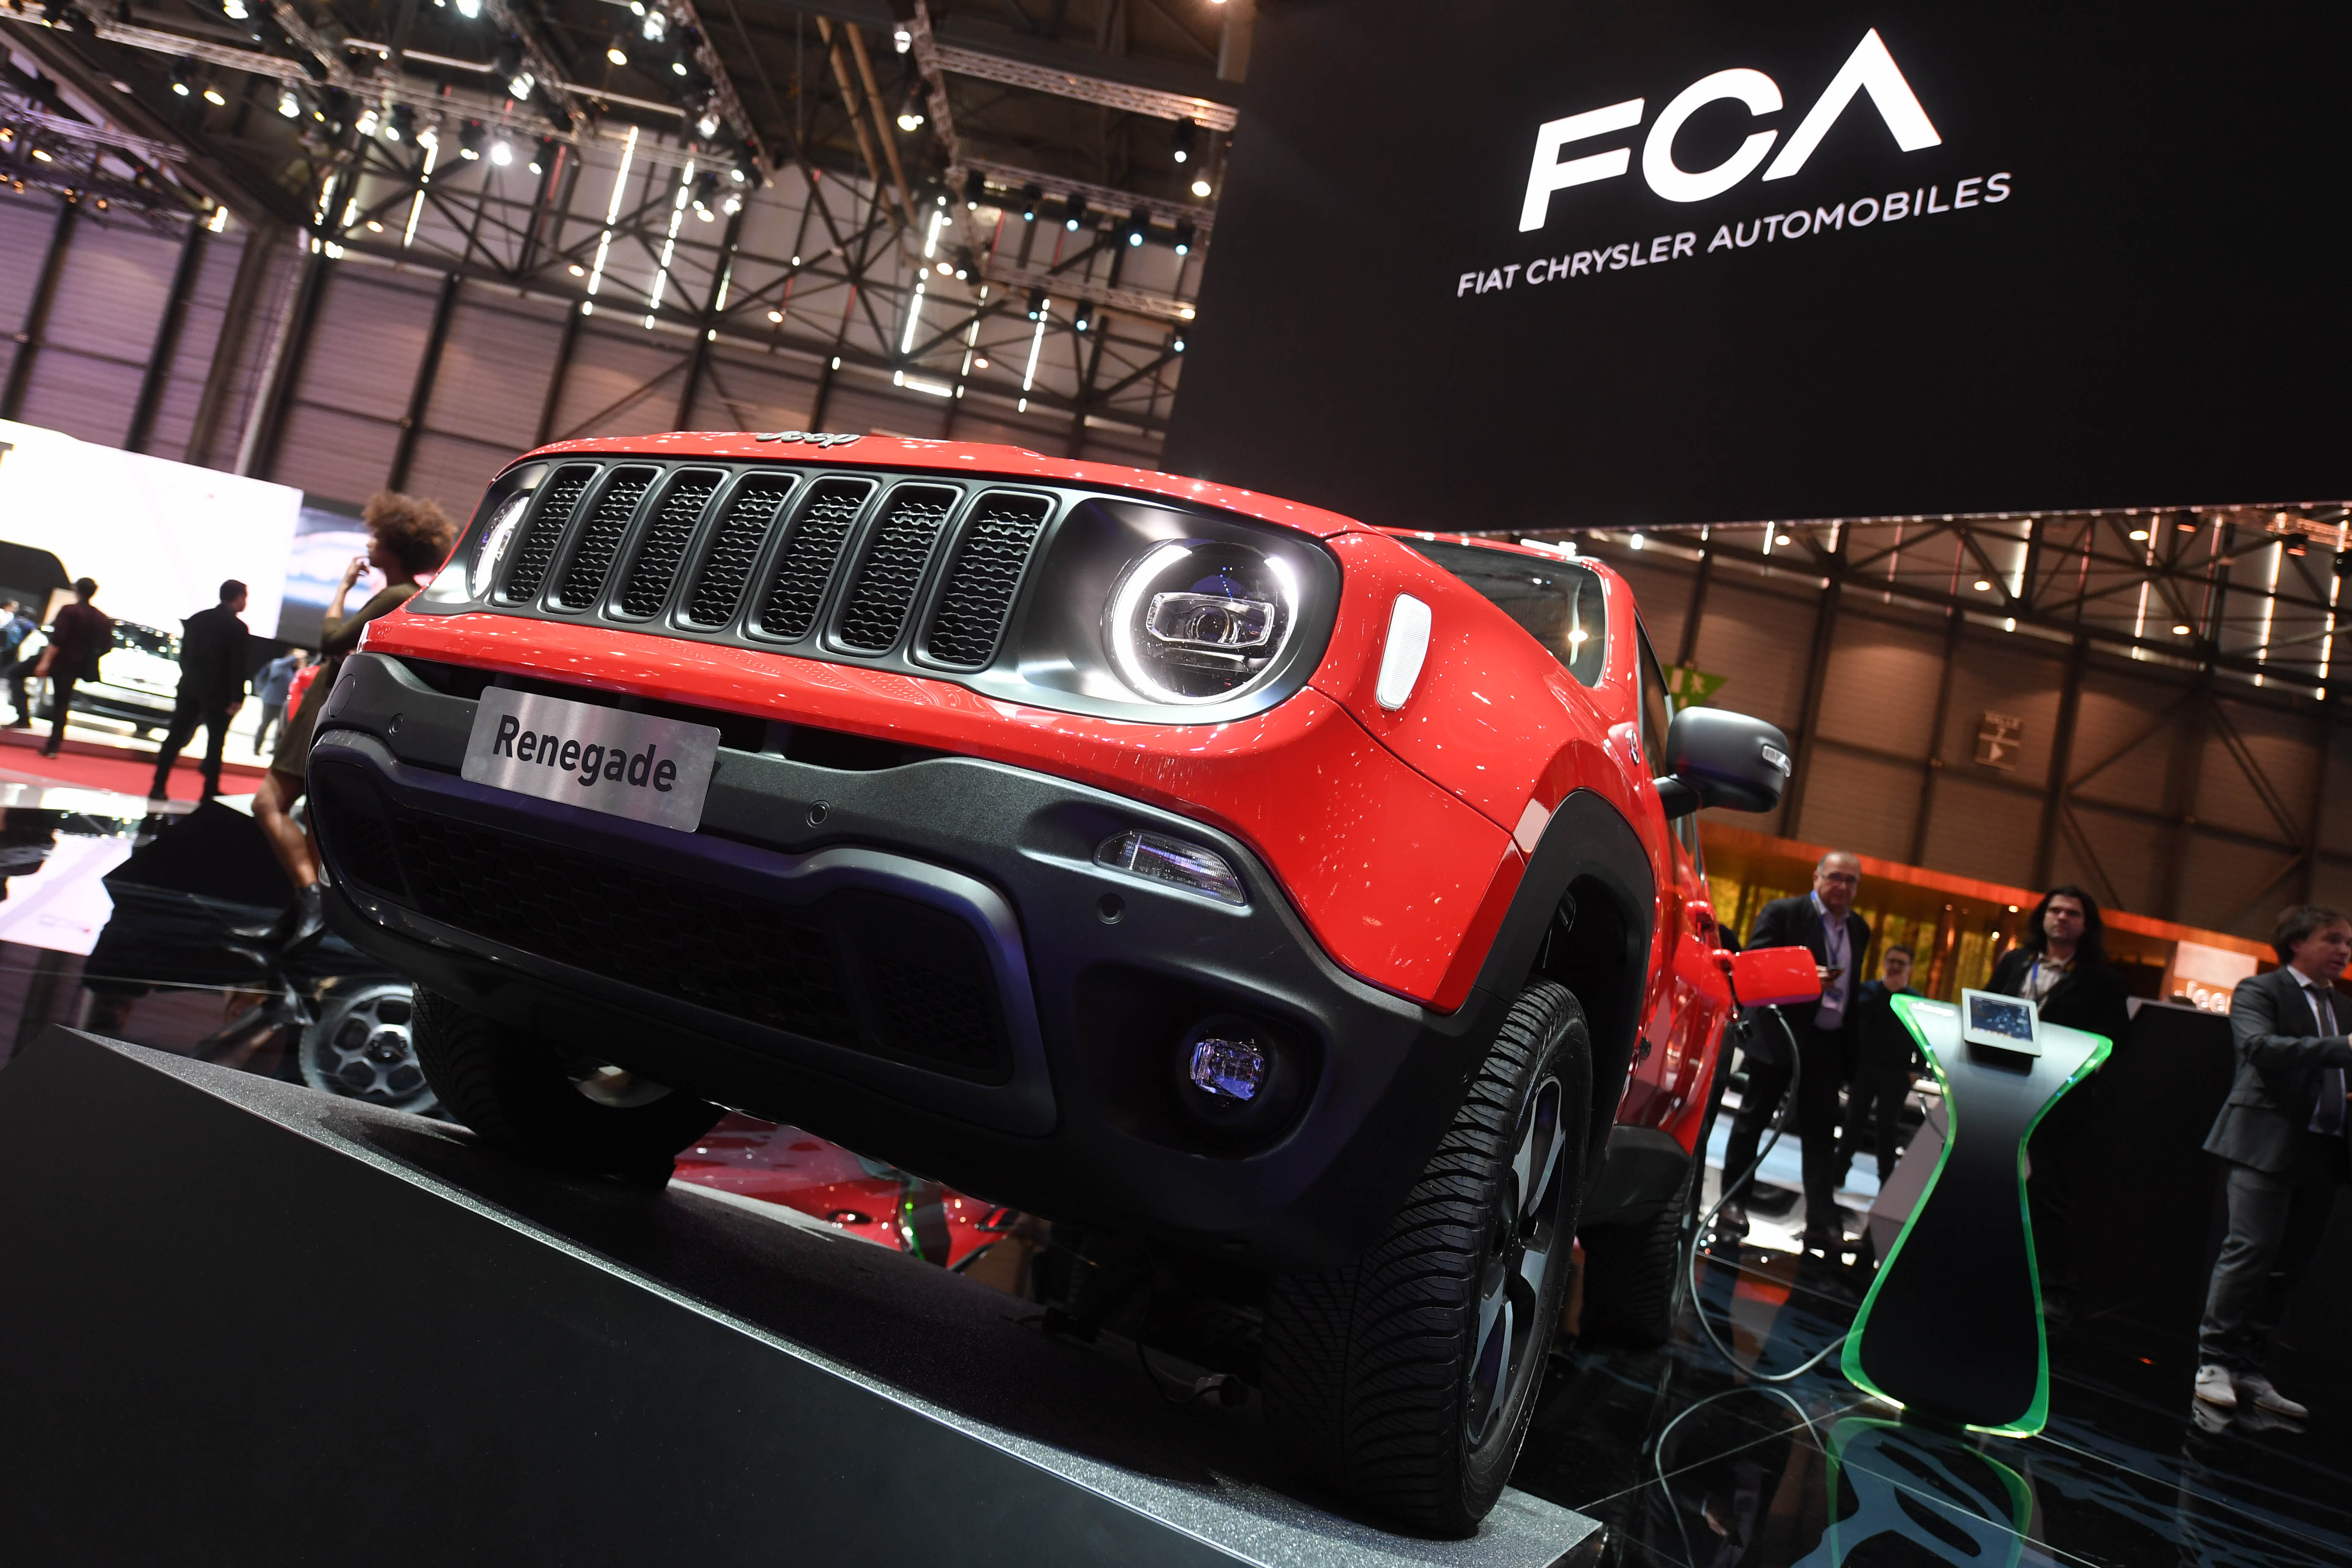 Fiat Chrysler and Peugeot confirm deal to merge